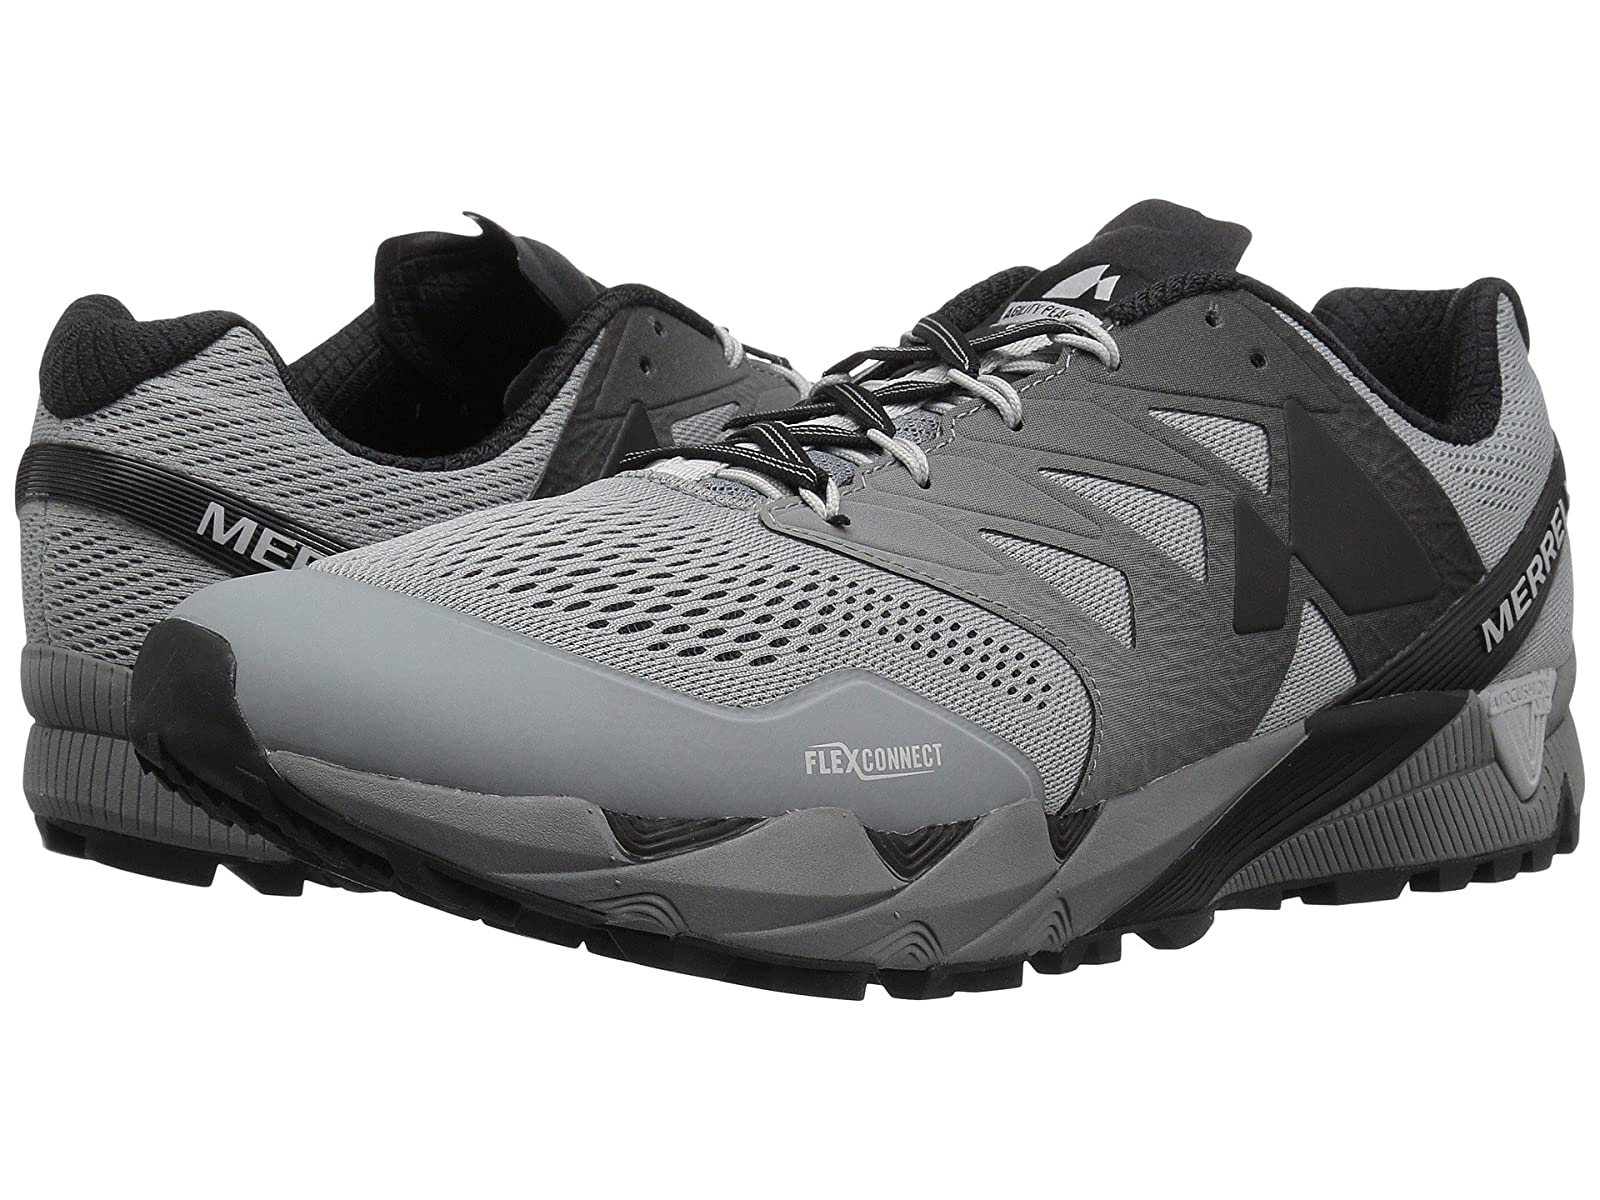 Merrell Agility Peak Flex 2 E-MeshAtmospheric grades have affordable shoes